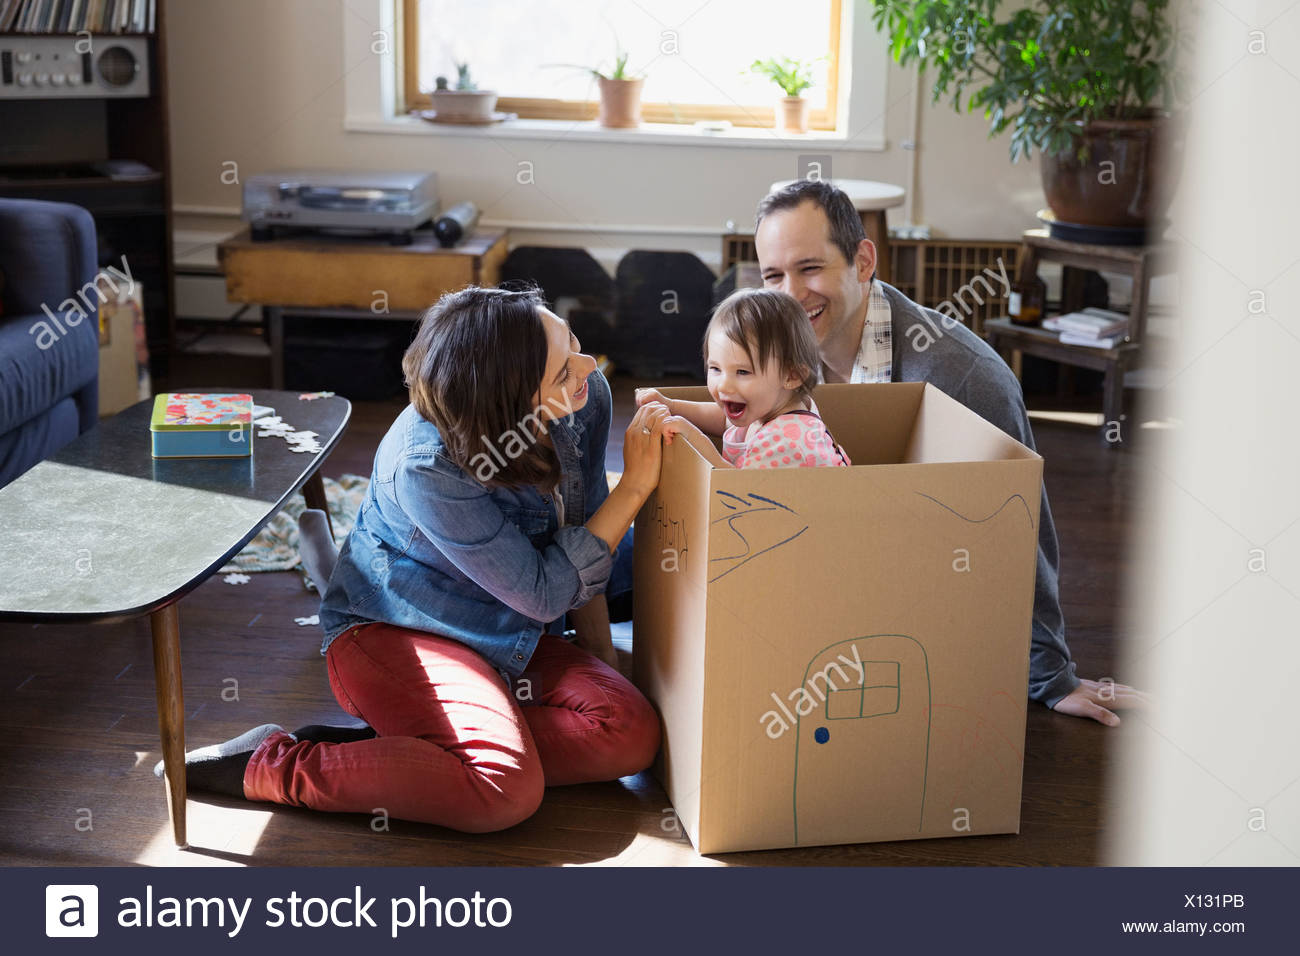 Young family playing in living room - Stock Image